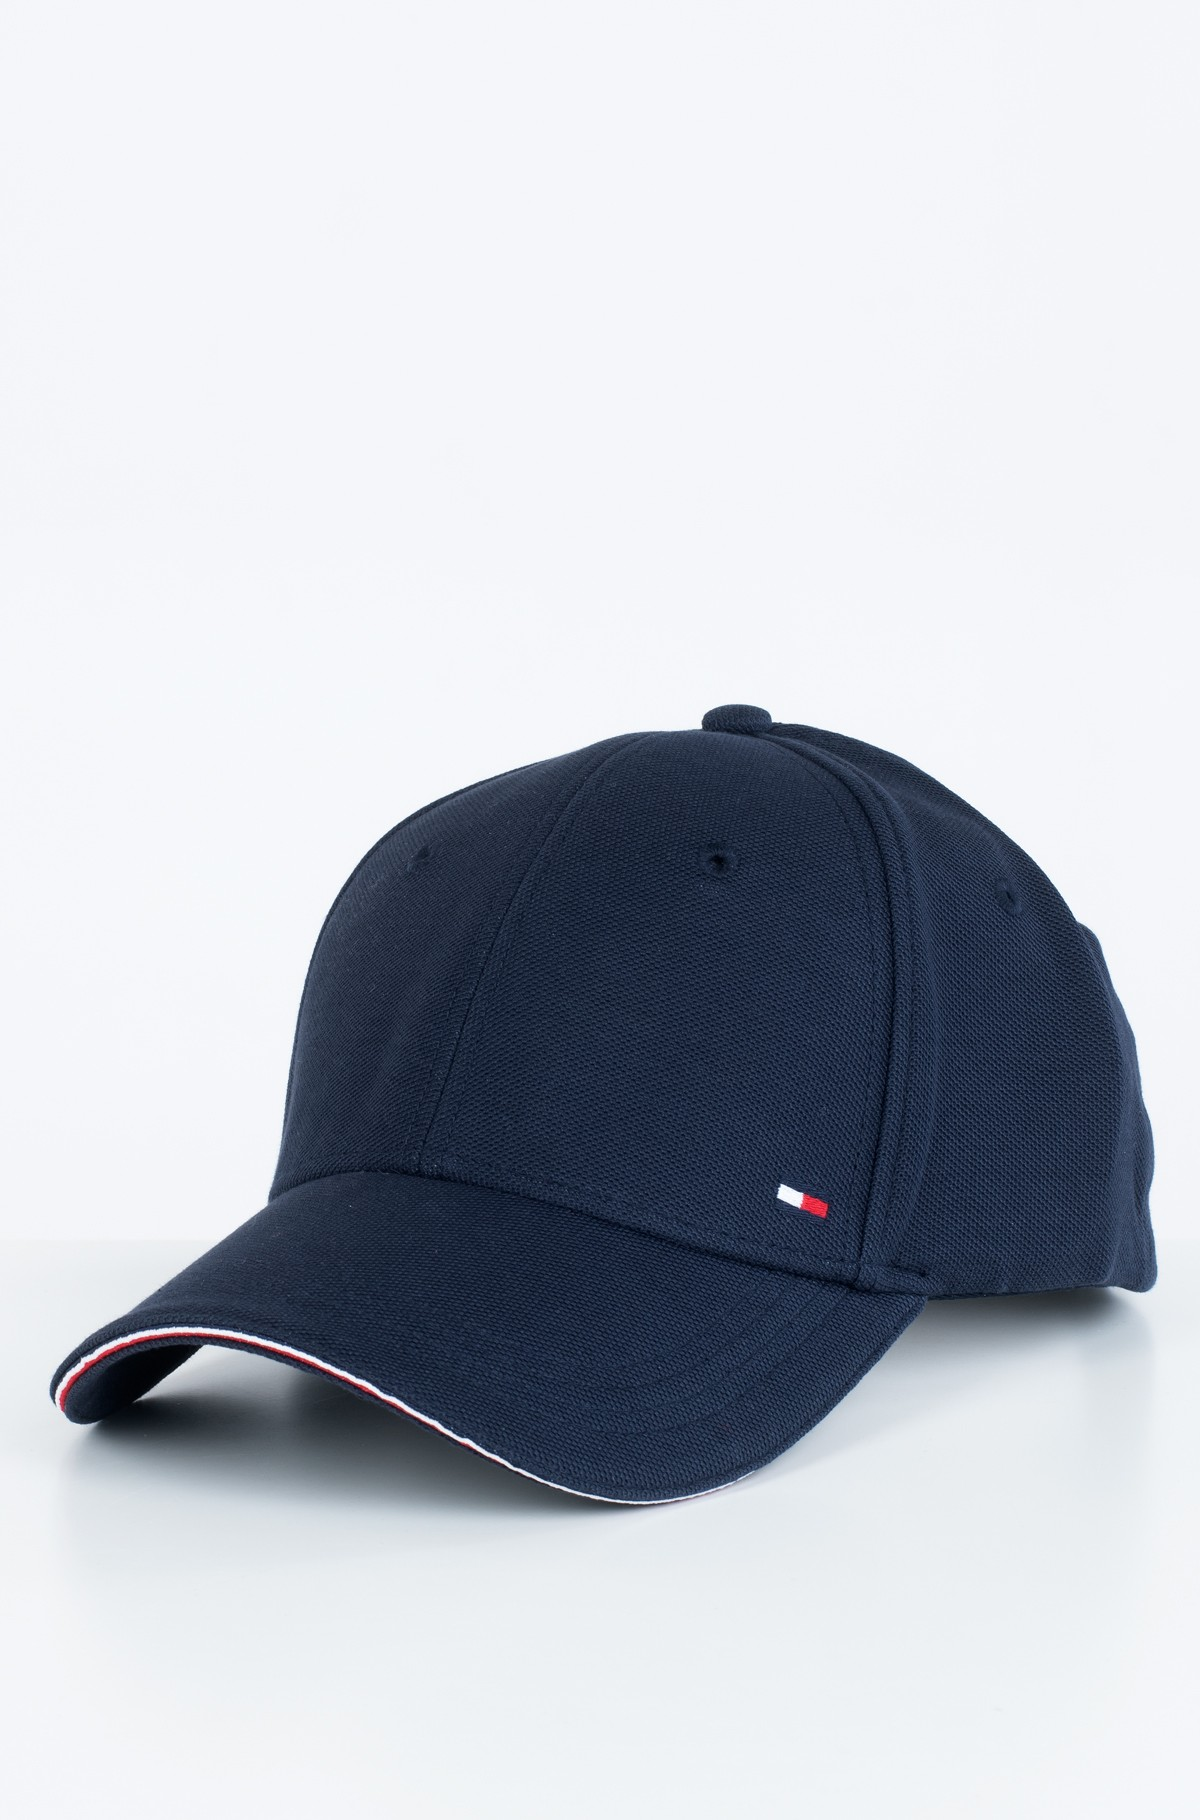 Nokamüts ELEVATED CORPORATE CAP-full-1